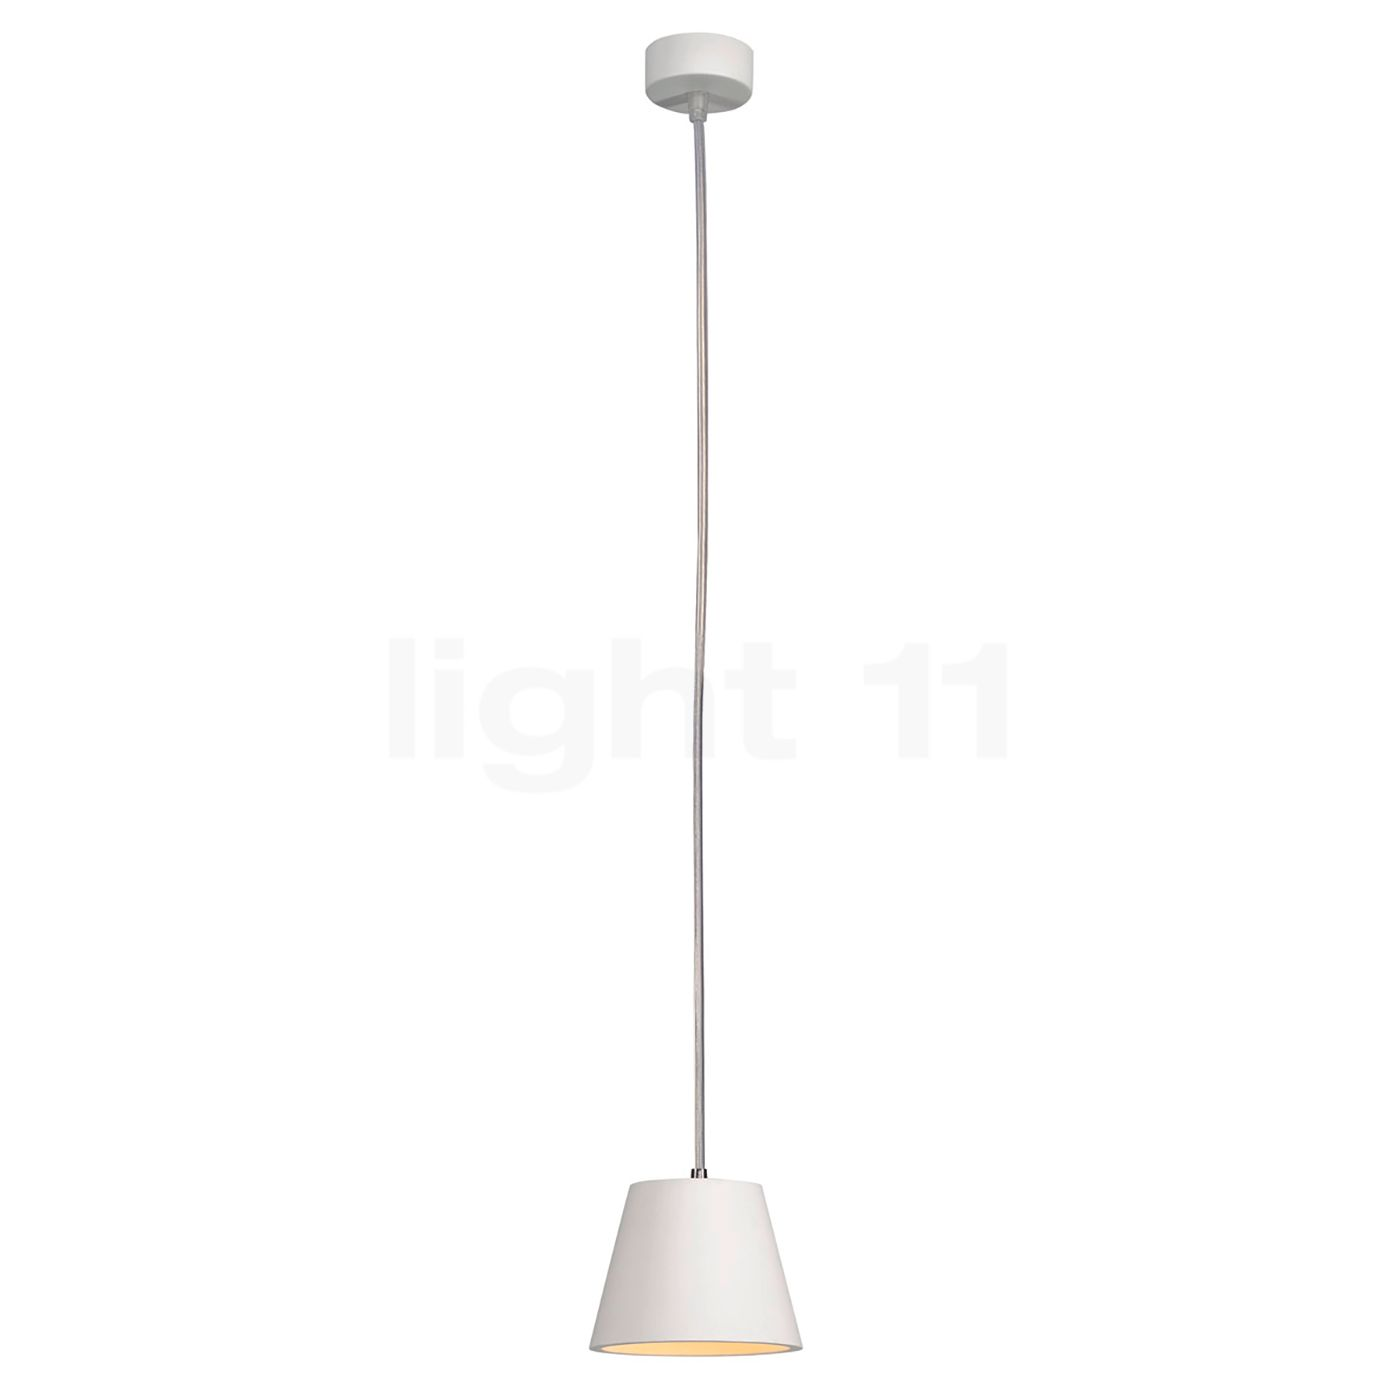 cone para intalite black pendant light slv ceiling fitting